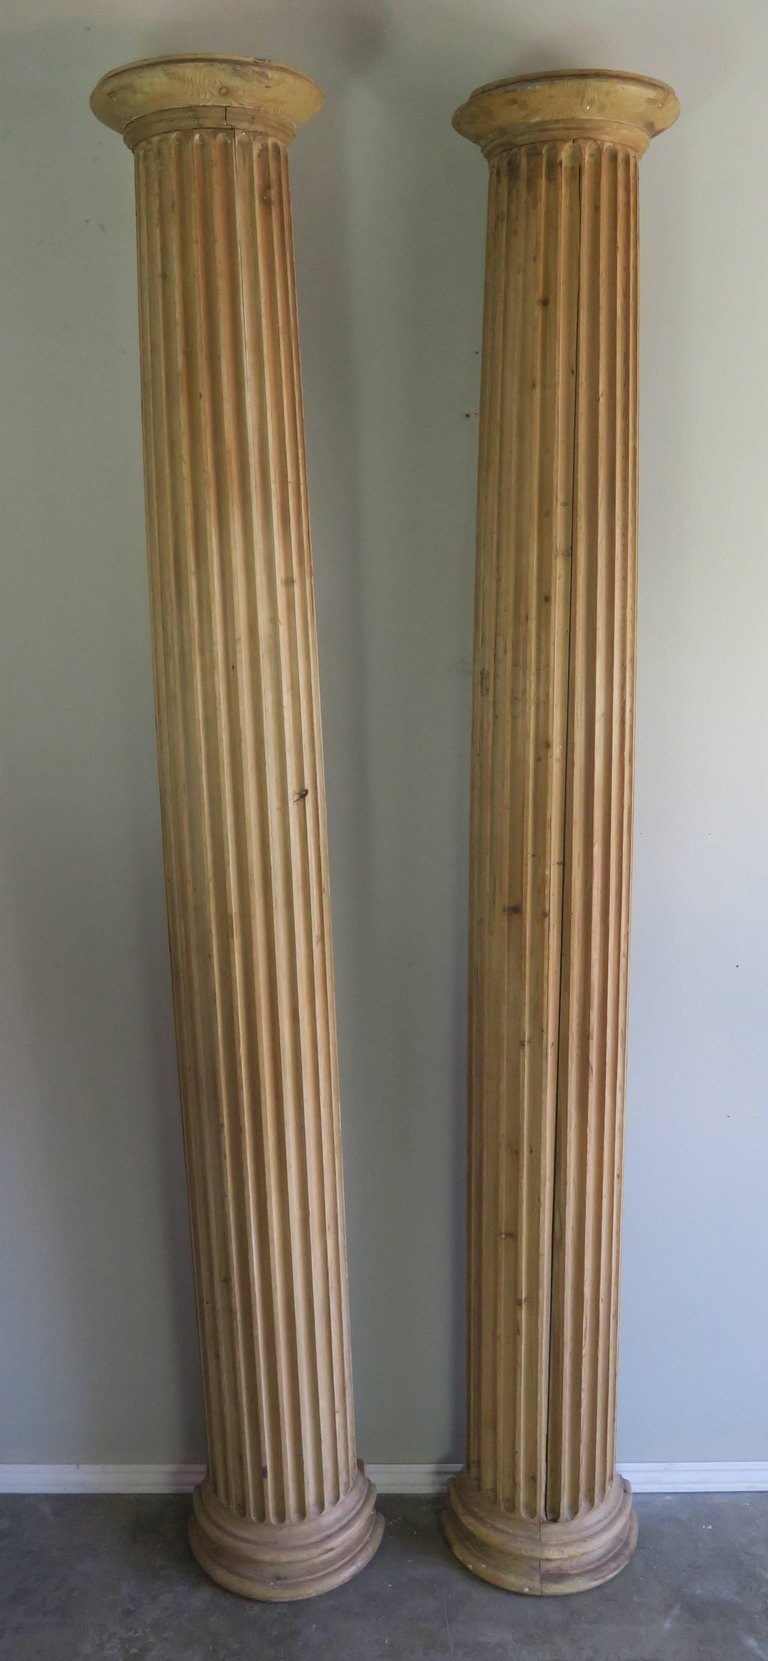 19th Century Italian Carved Pinewood Pilasters, Pair 1